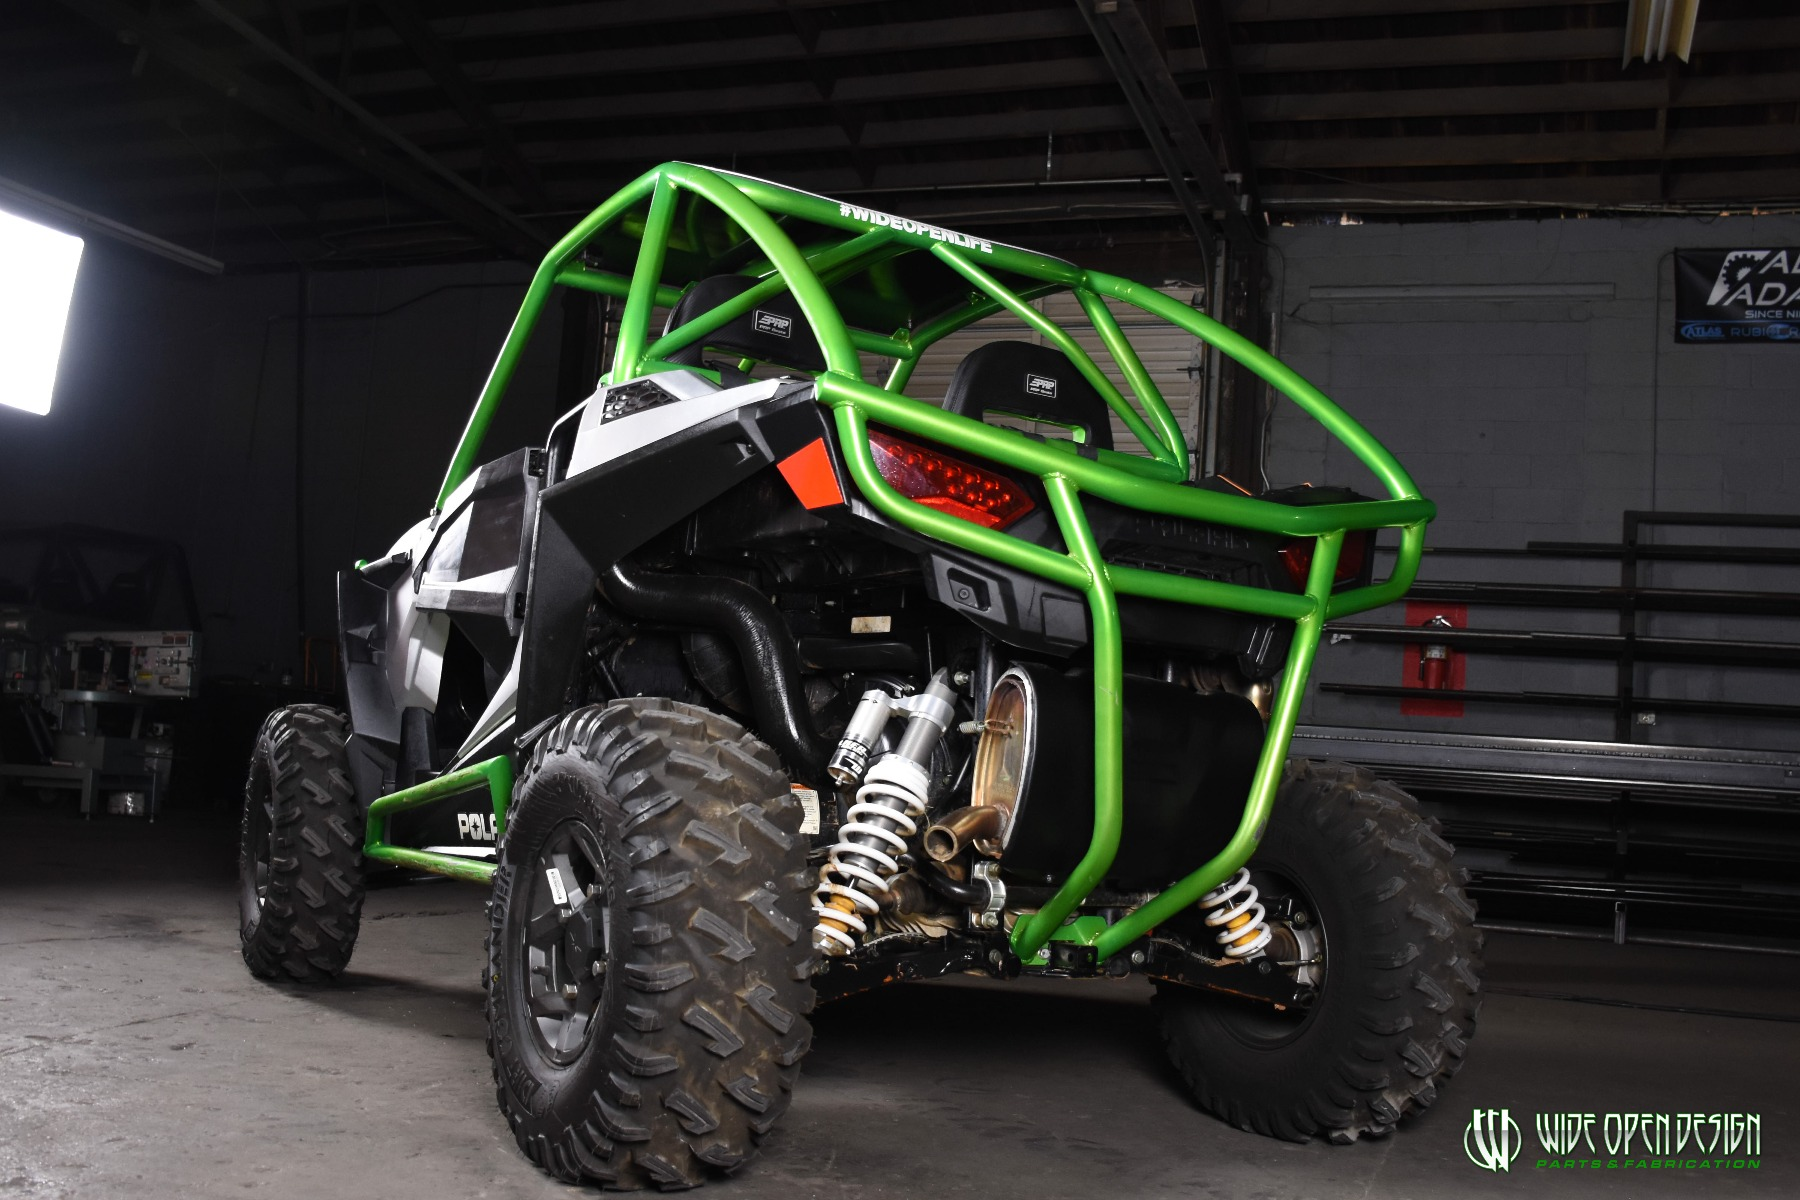 Jason's 1000s RZR with Wide Open Design Rolled Roof Cage, Front Bumper with Tie In, and Rocker Guards 29